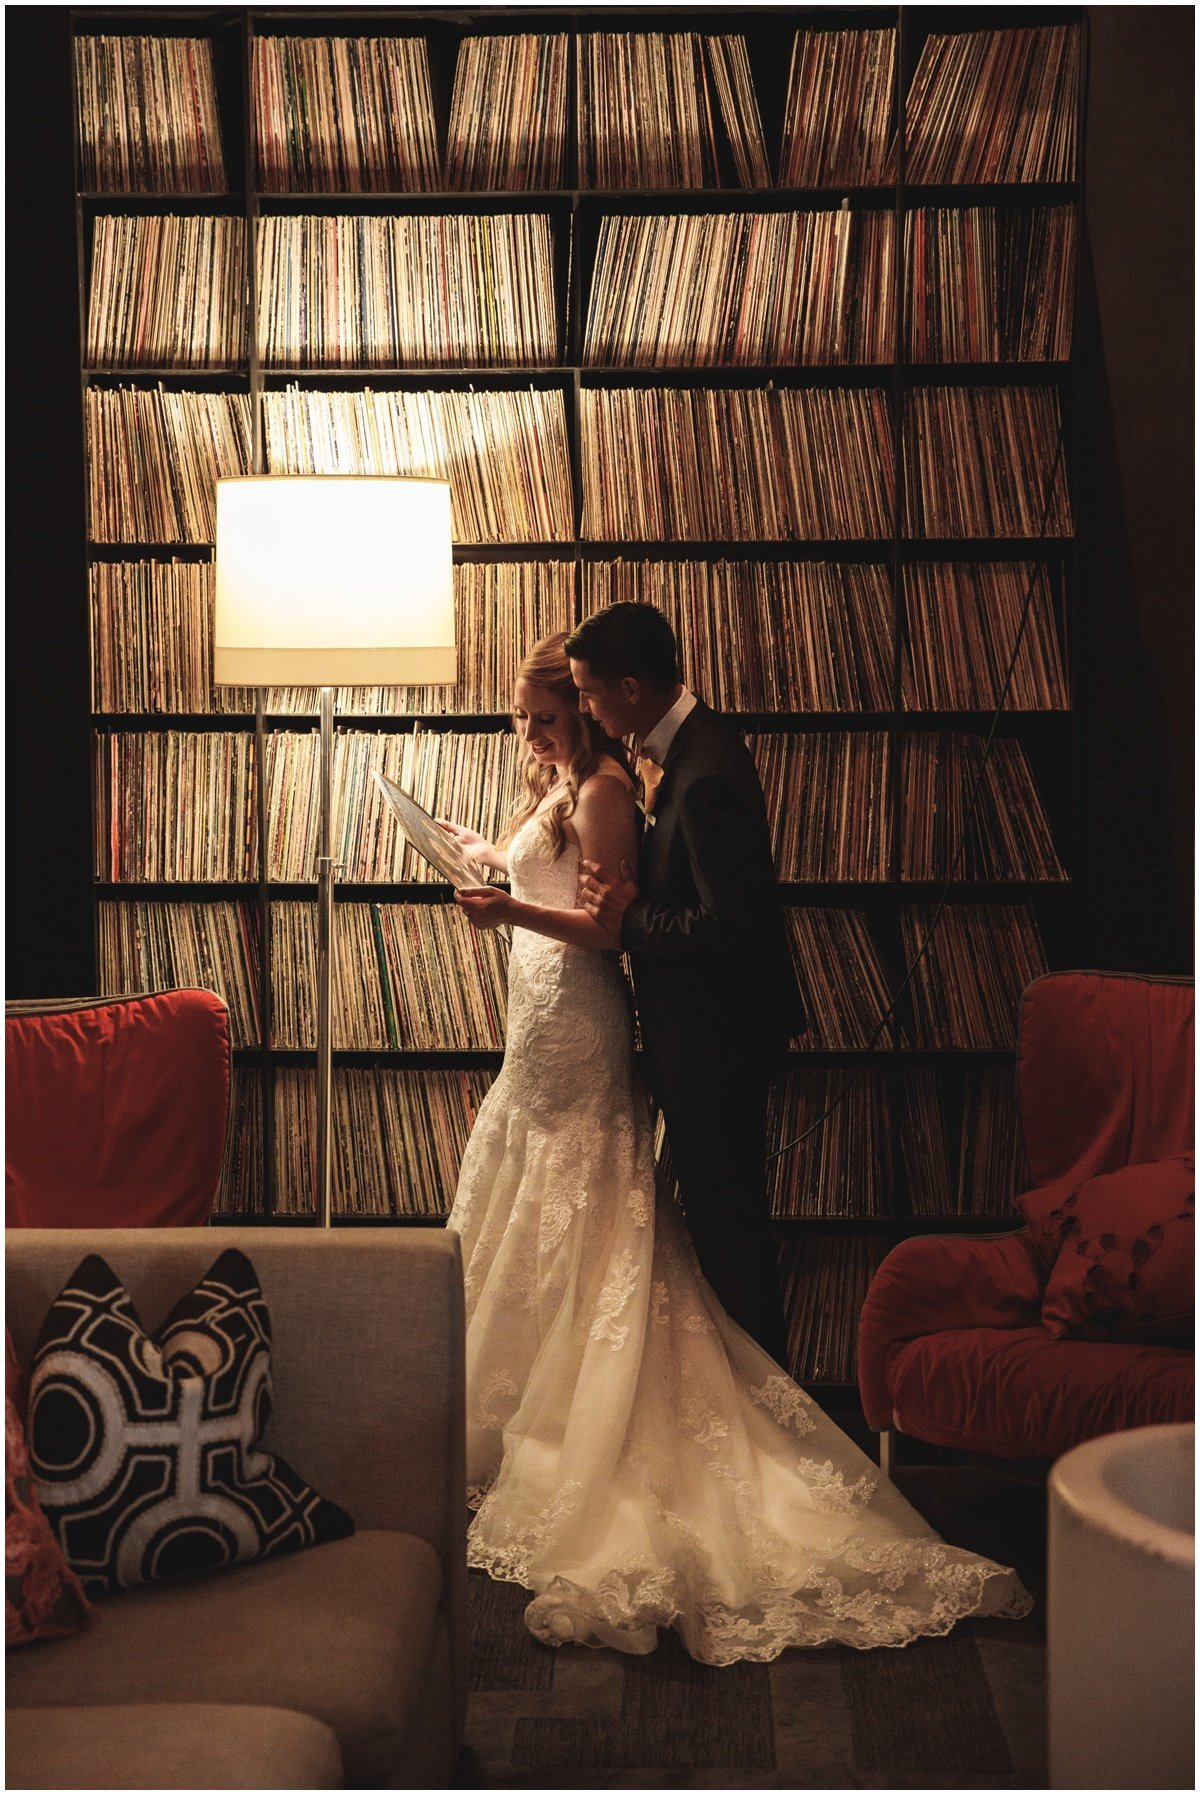 Austin wedding photographer w hotel wedding photographer bride groom record room